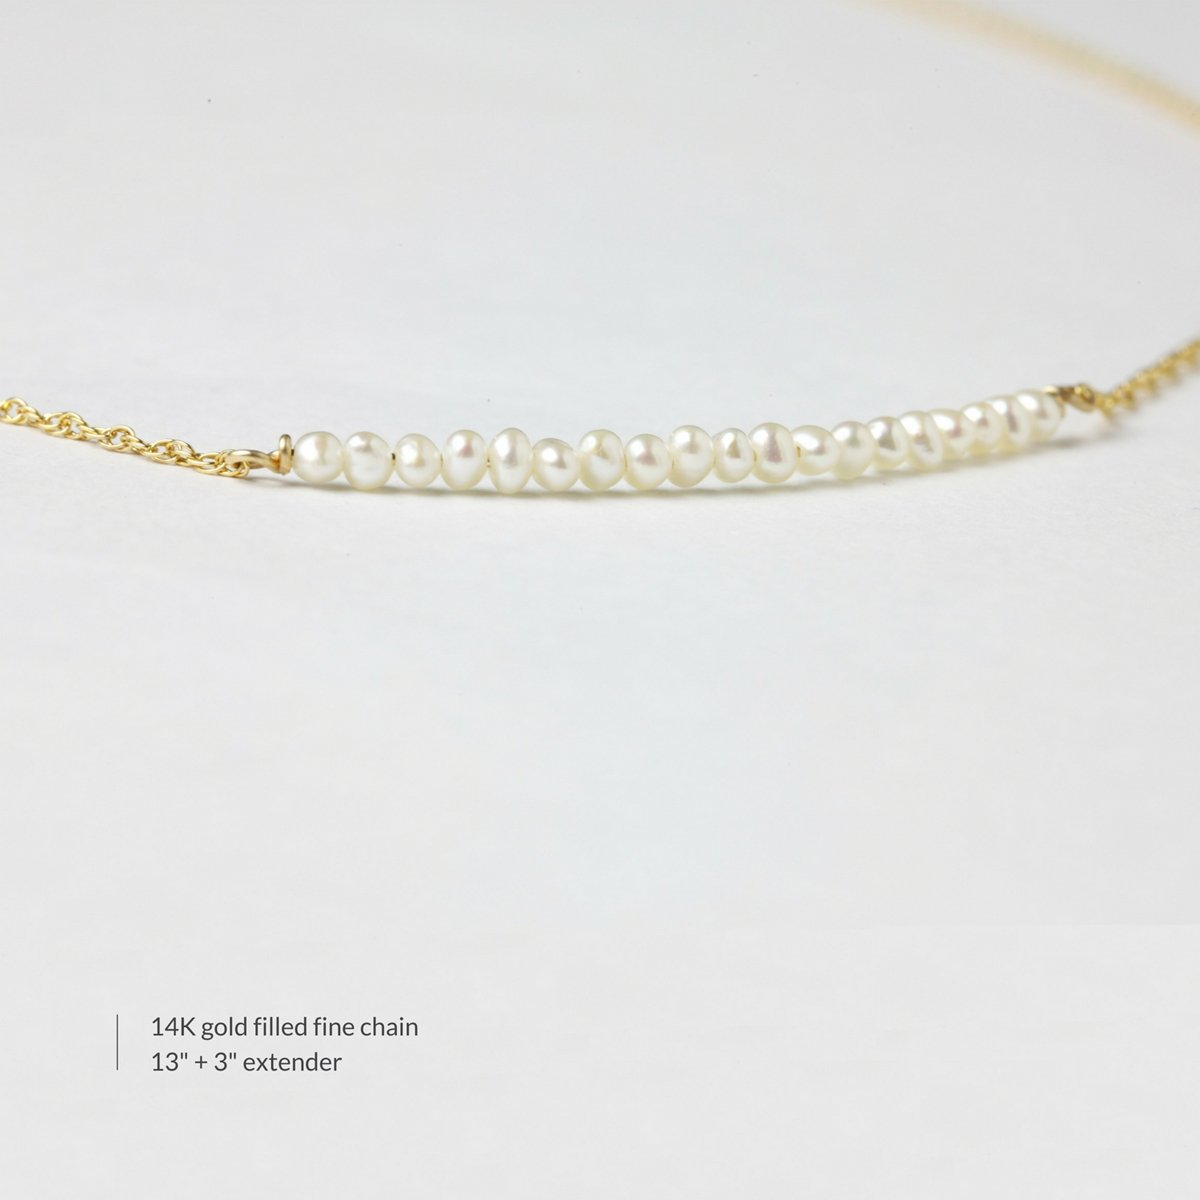 BENIQUE Dainty Necklace Choker for Women - Freshwater Cultured Pearl, Fine Chain for Layering, AAA Cubic Zirconia Drop, 14K Gold Filled, Made in USA, 13''+3'' Adjustable Ext. (Mini Pearl Bar) by BENIQUE (Image #3)